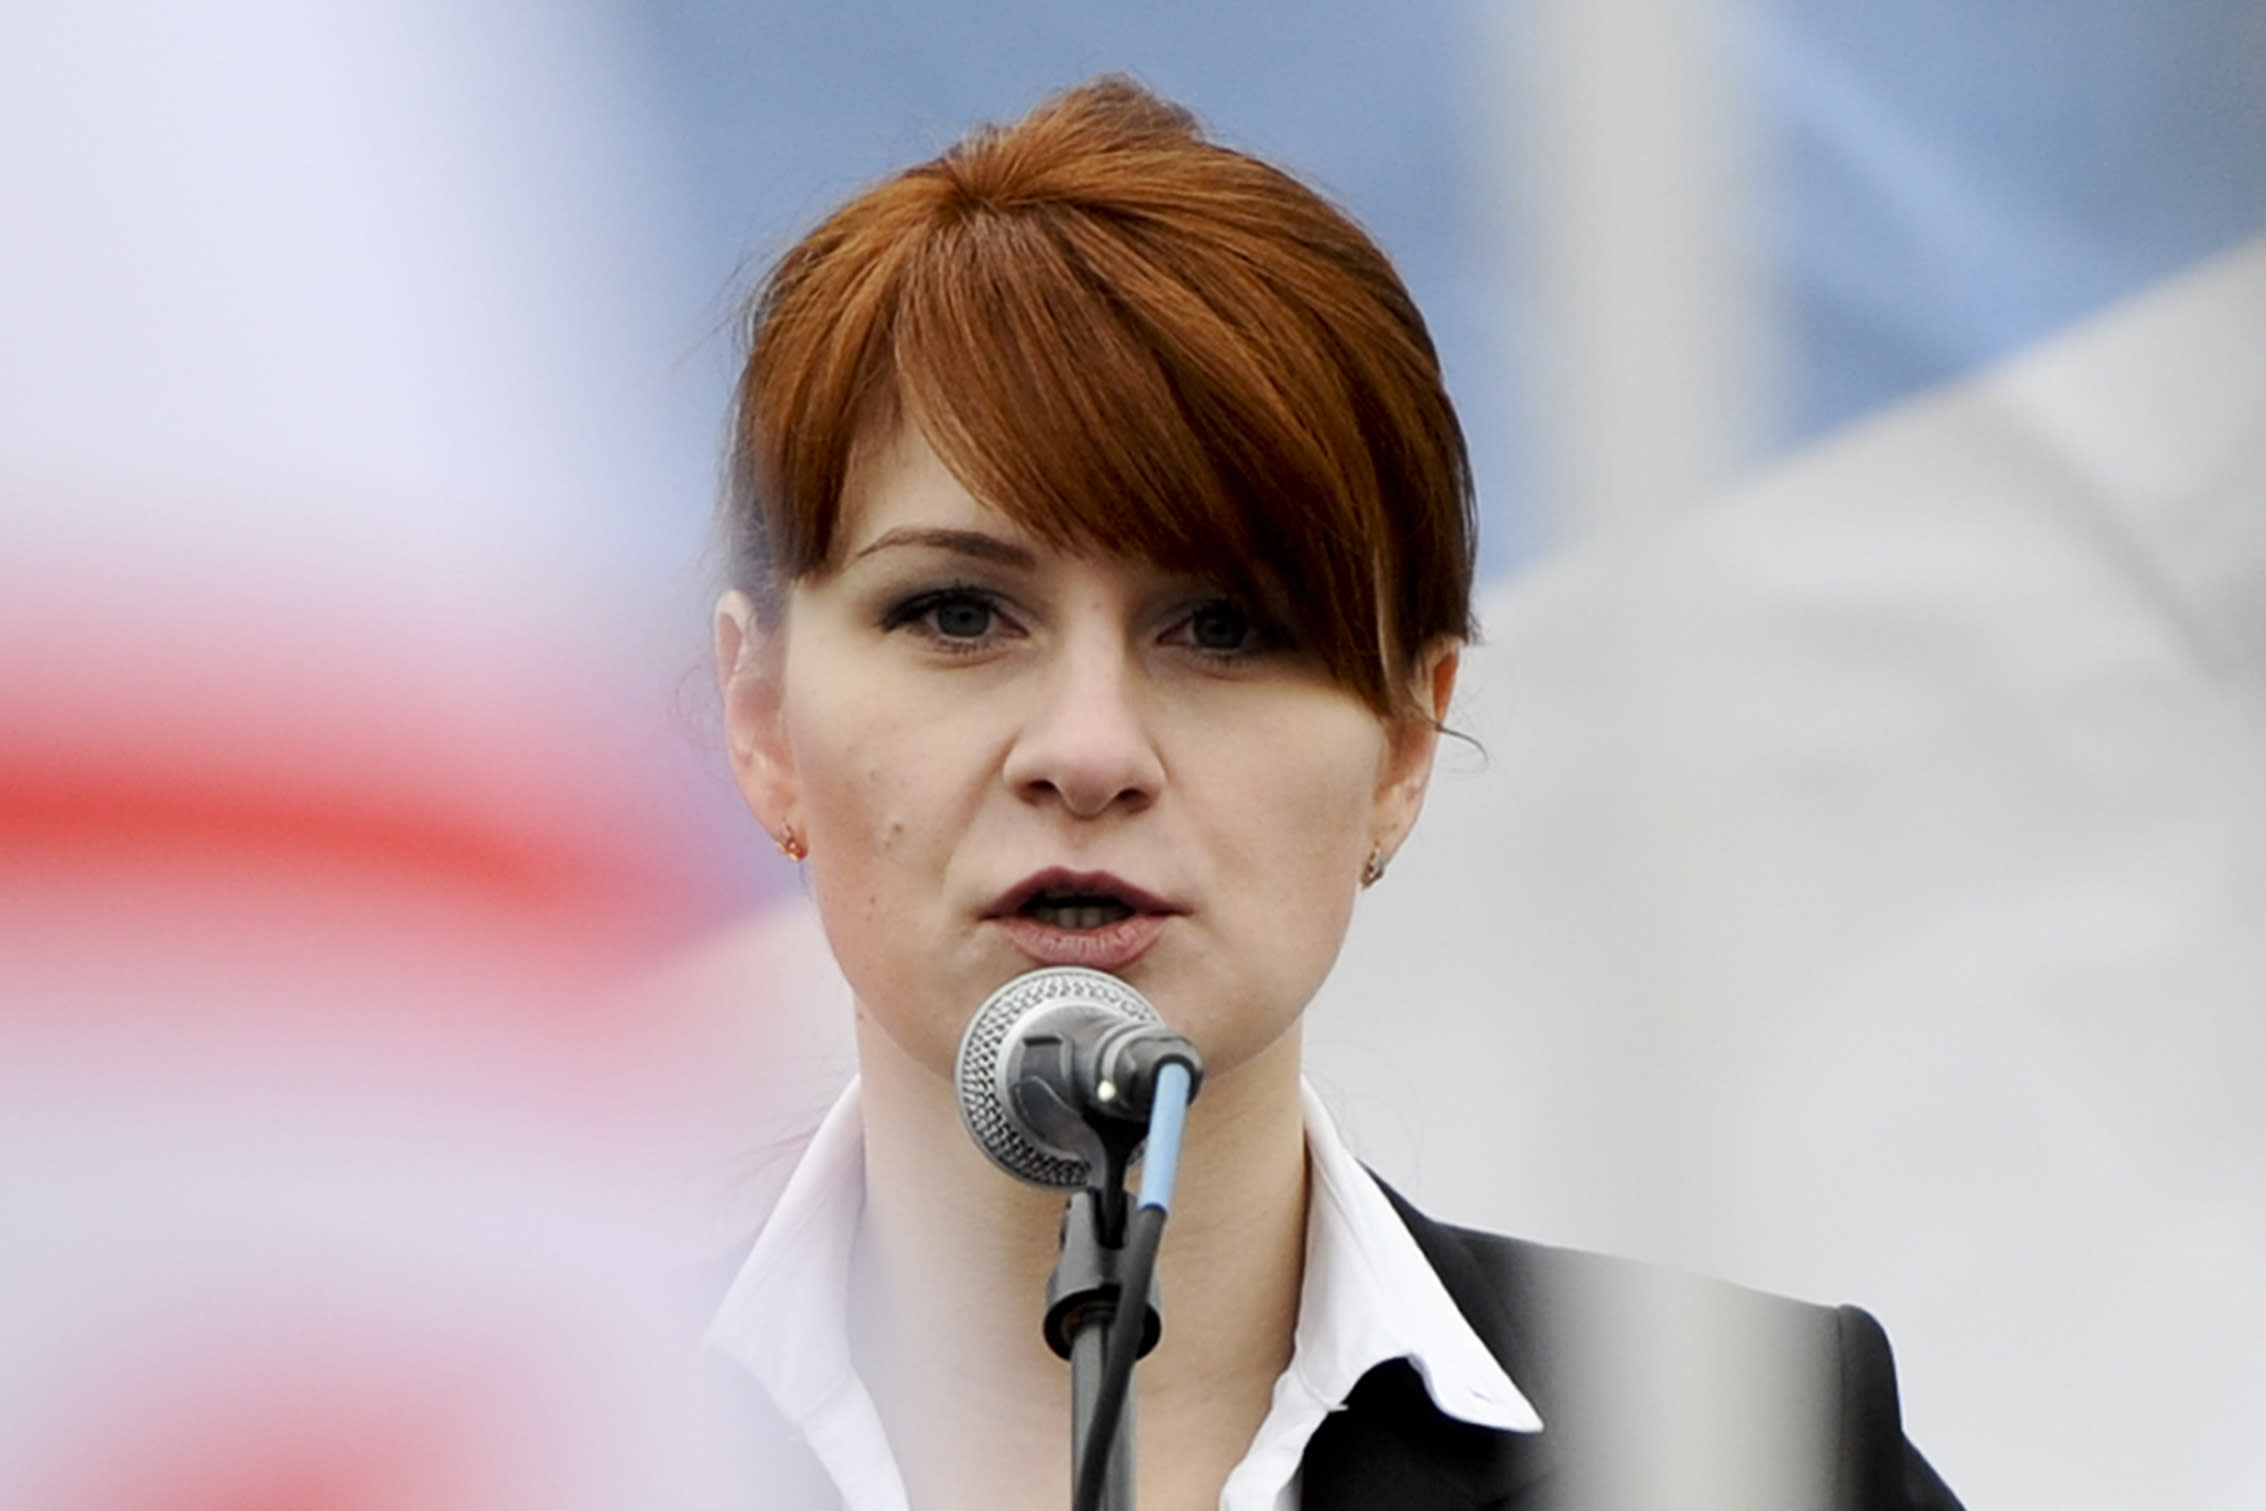 "FILE - In this April 21, 2013 file photo, Maria Butina, leader of a pro-gun organization in Russia, speaks to a crowd during a rally in support of legalizing the possession of handguns in Moscow, Russia. A new report by Oregon Sen. Ron Wyden, the top Democrat on the Senate Finance Committee, charges The National Rifle Association acted as a ""foreign asset"" for Russia in the run-up to the 2016 election and NRA insiders provided access to the American political system to advance personal business interests. The report also said NRA leaders may have violated tax laws that prohibit use of organization resources for personal benefit. The report, based on an 18-month investigation by the finance panel's Democratic staff, found that NRA leaders ""engaged in a years-long effort to facilitate the U.S.-based activities"" of Russian nationals Maria Butina and Alexander Torshin. (AP Photo/File)"